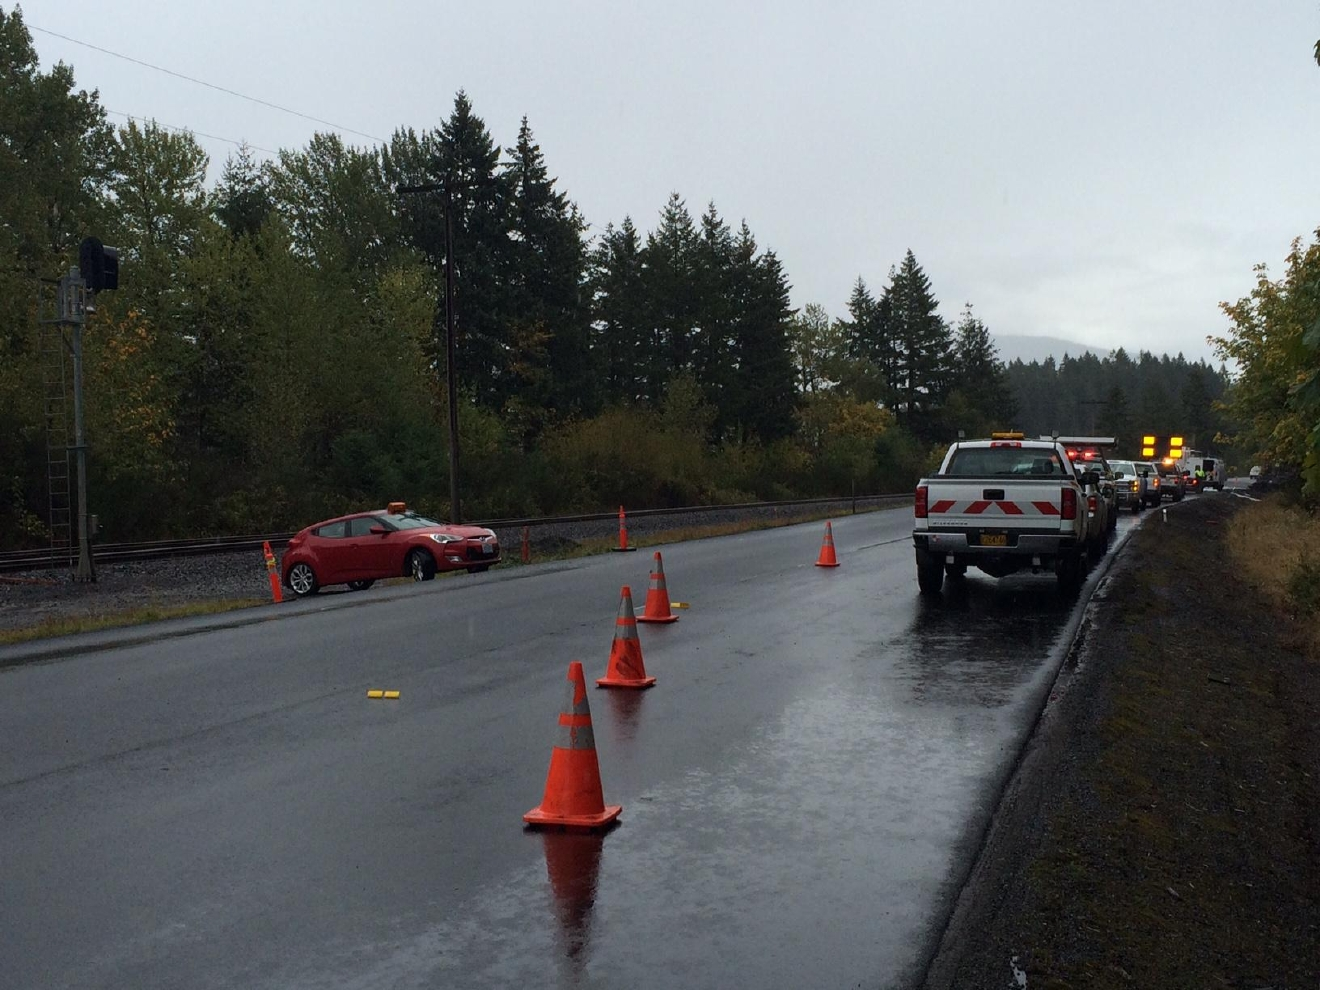 One lane of Highway 58 is open after a tanker truck crashed and exploded late Saturday night. The crash caused damage to the pavement and police are still investigating the scene. Photo courtesy OSP